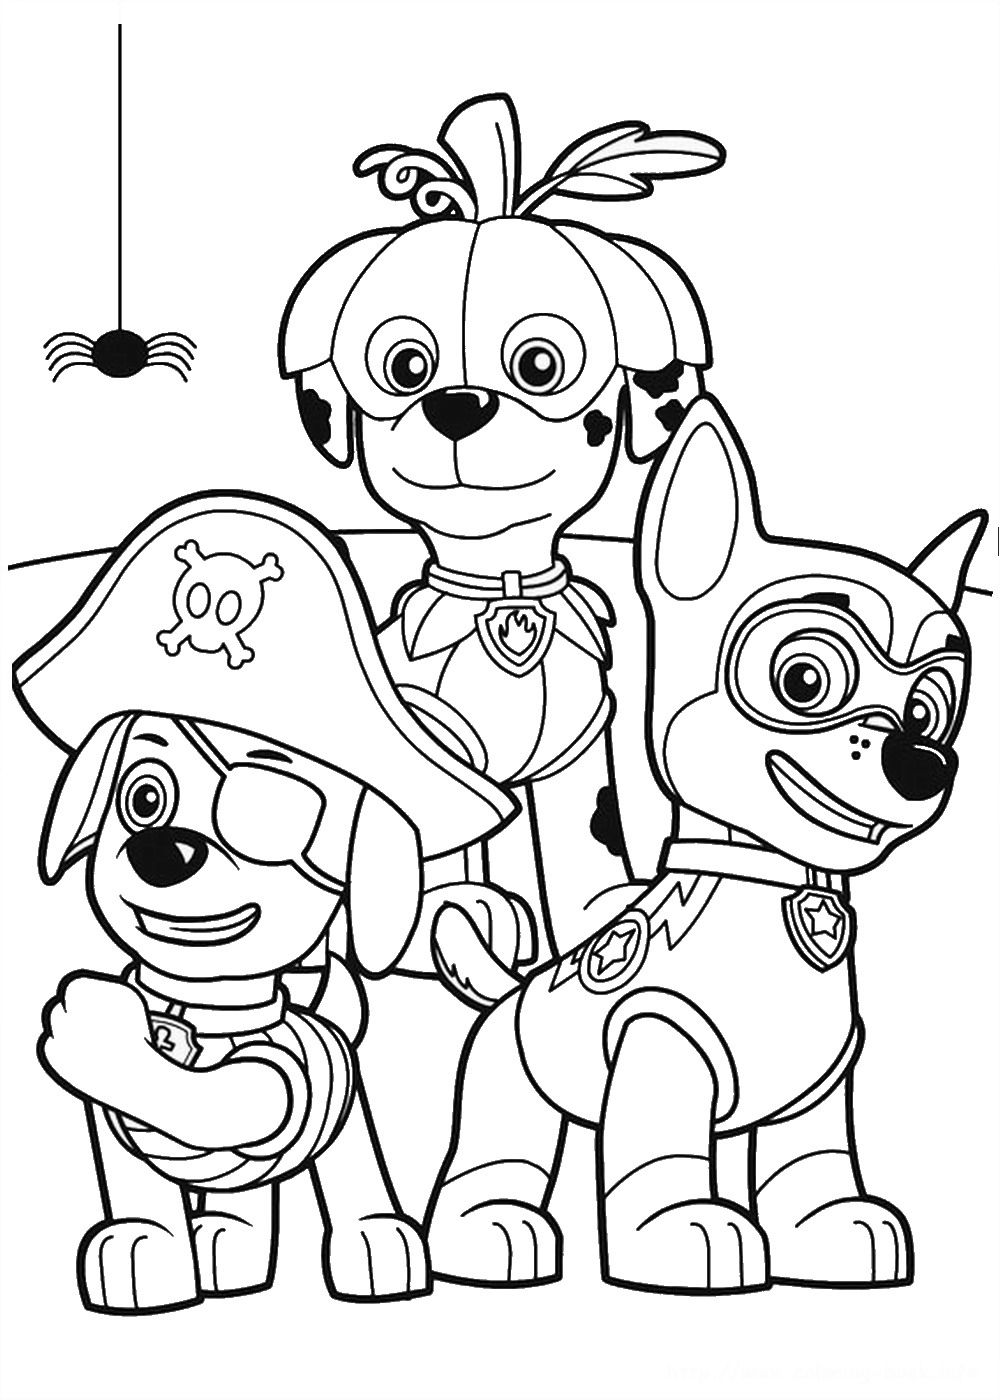 paw_patrol_coloring_page_21 | Coloring pages for my boy 3-6 ...